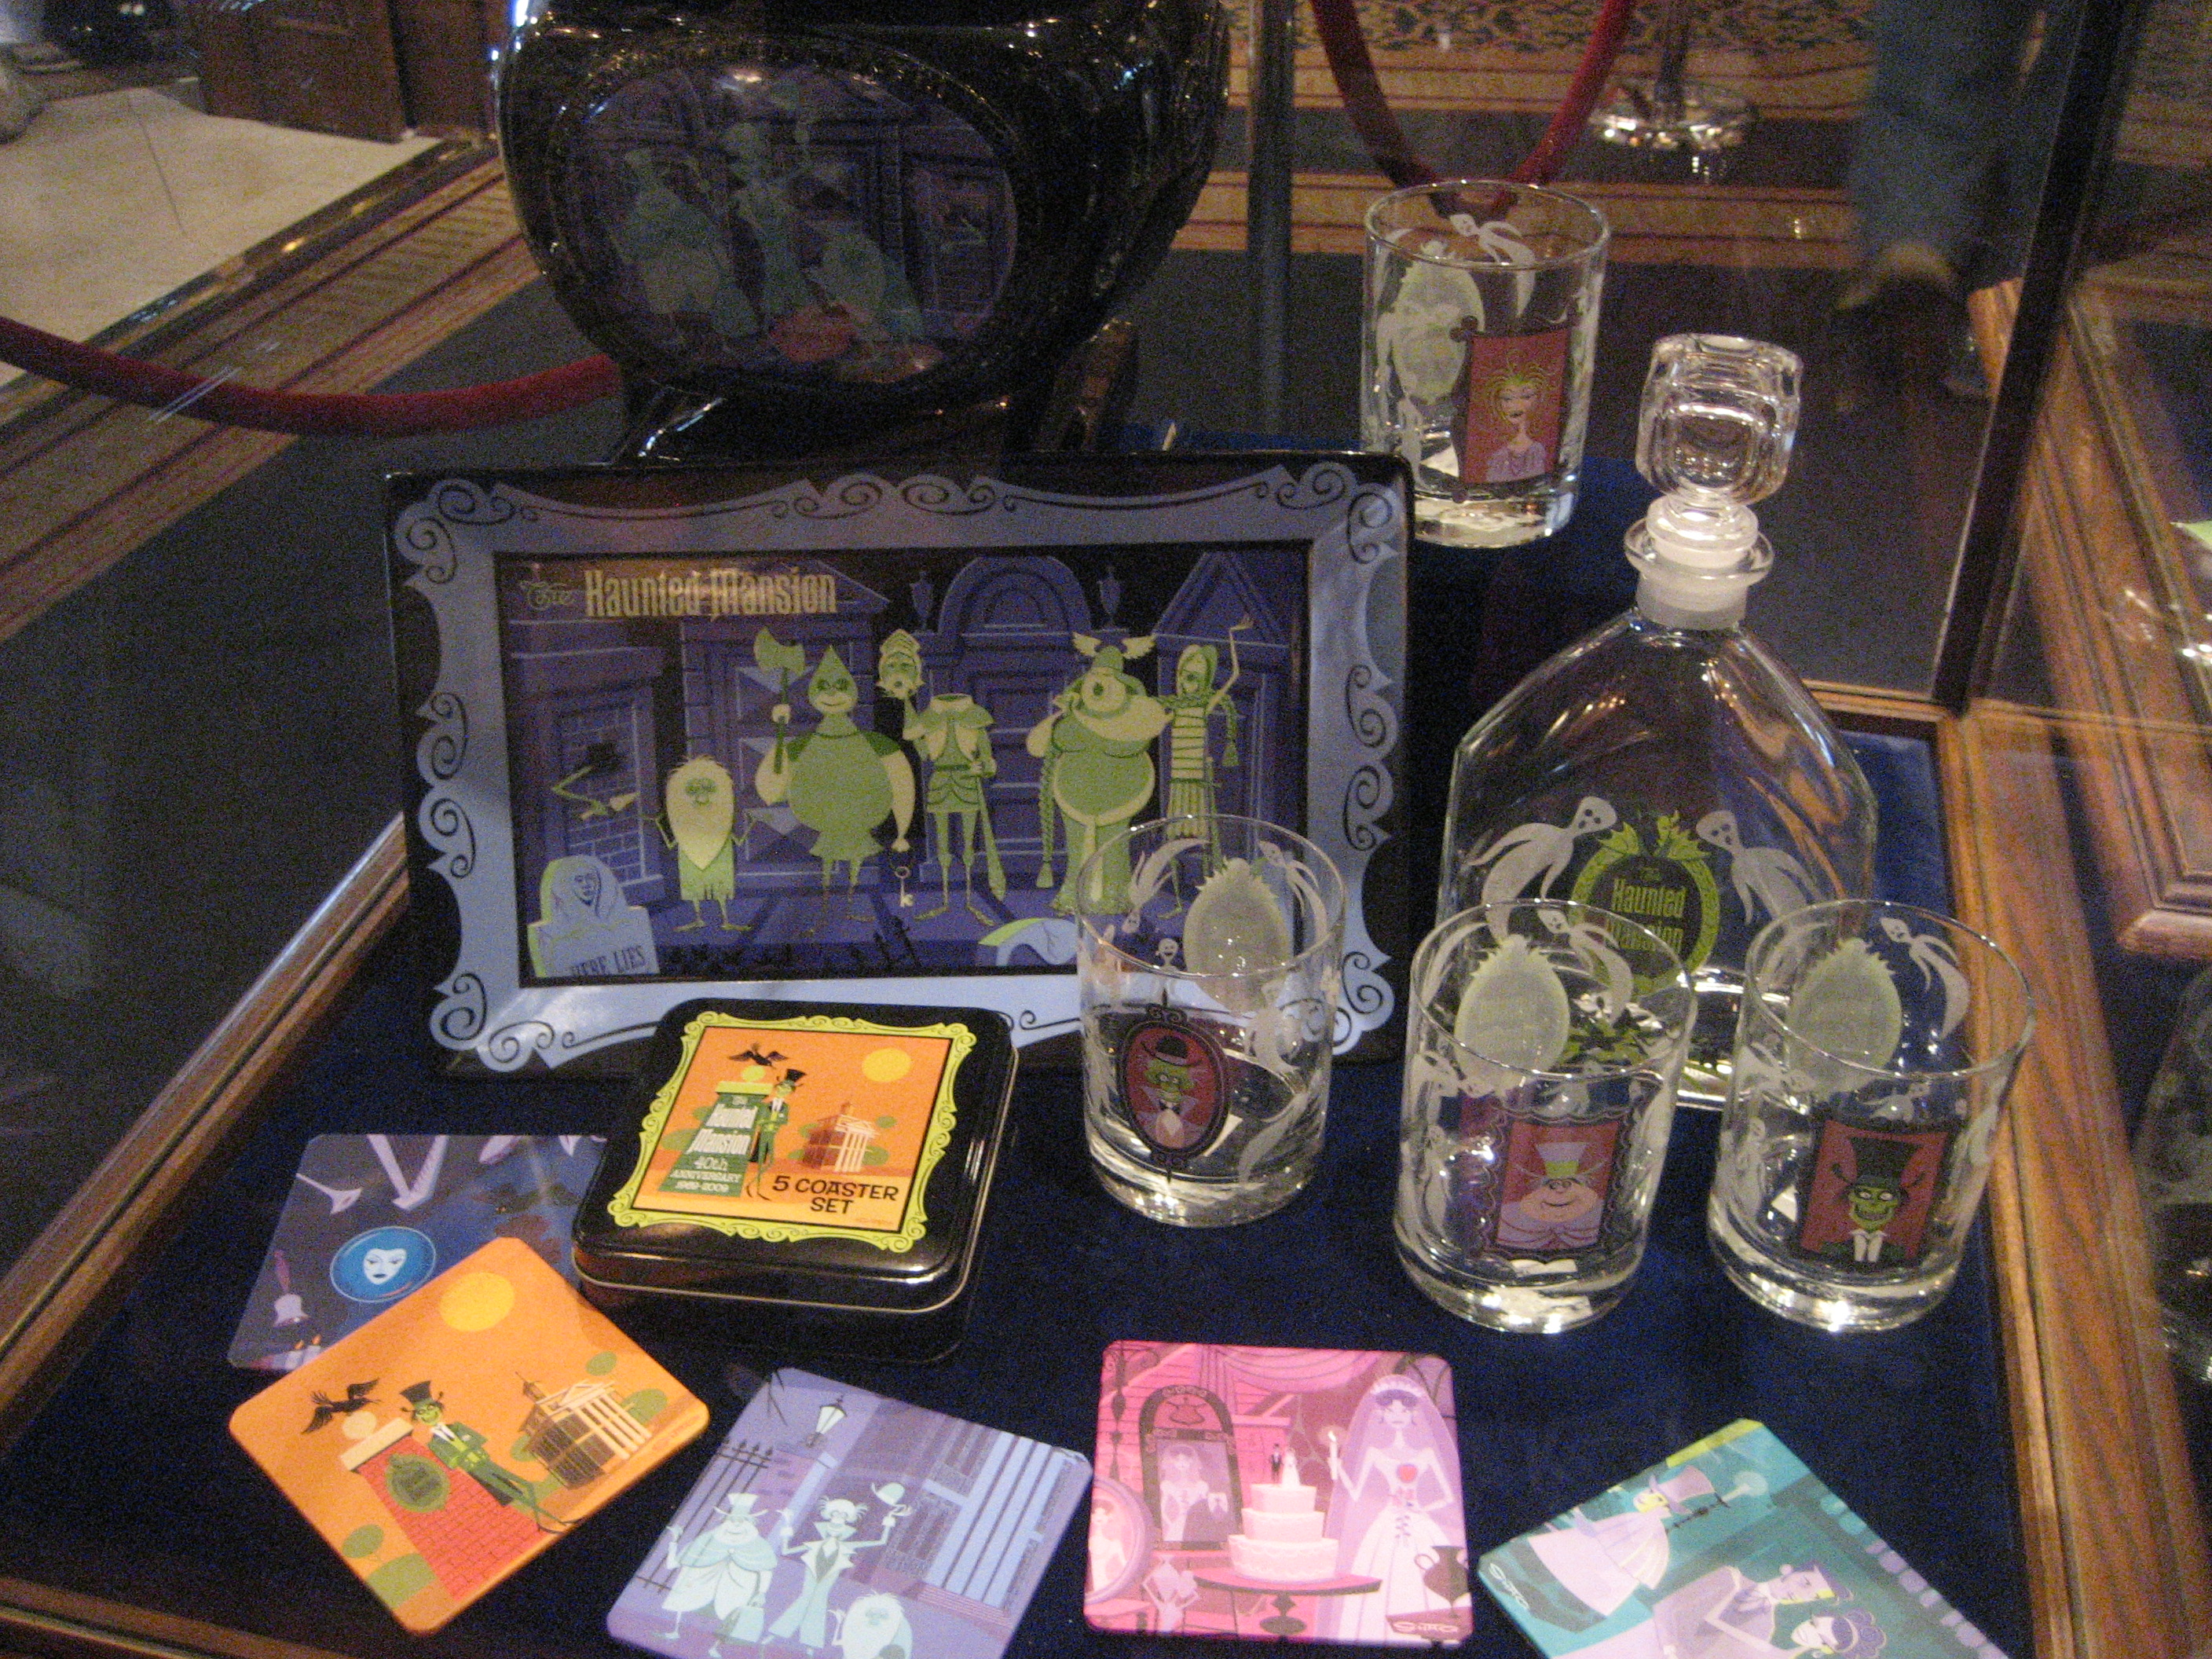 Shag's Haunted Mansion appetizer tray, decanter, glasses and coaster set